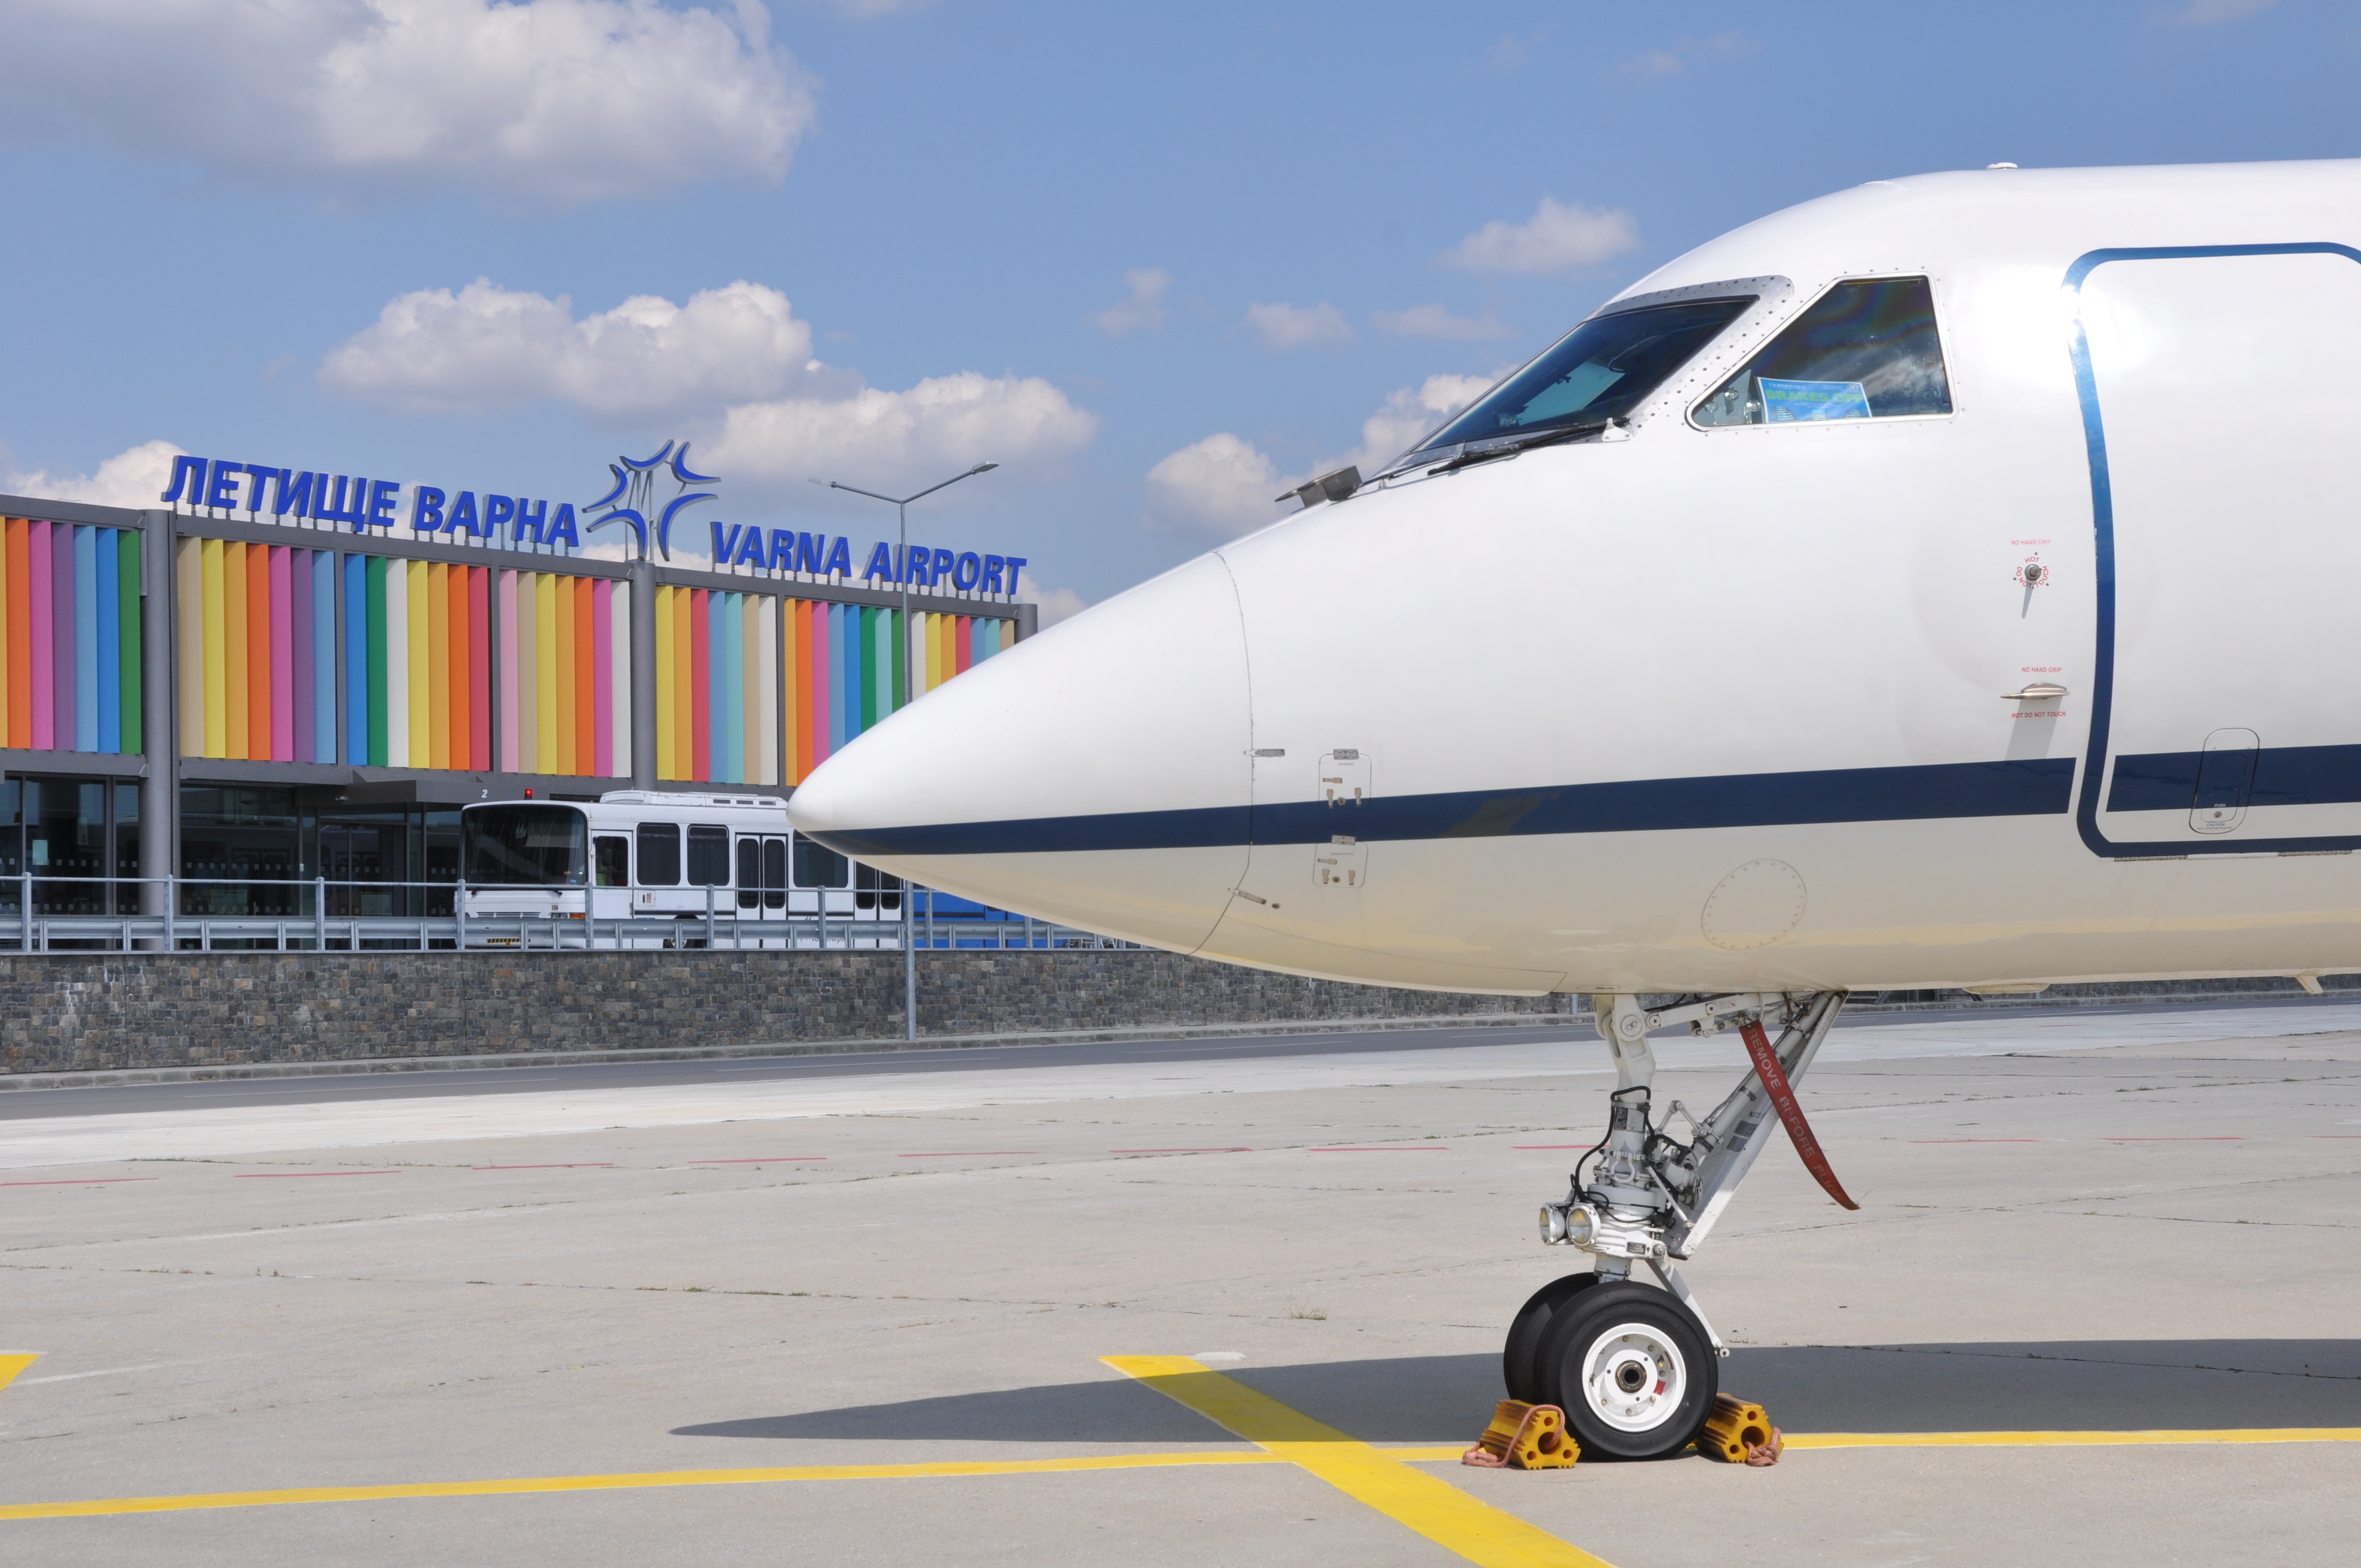 Passenger numbers at Bulgaria's Varna, Burgas airports rise by over 20% in 2016